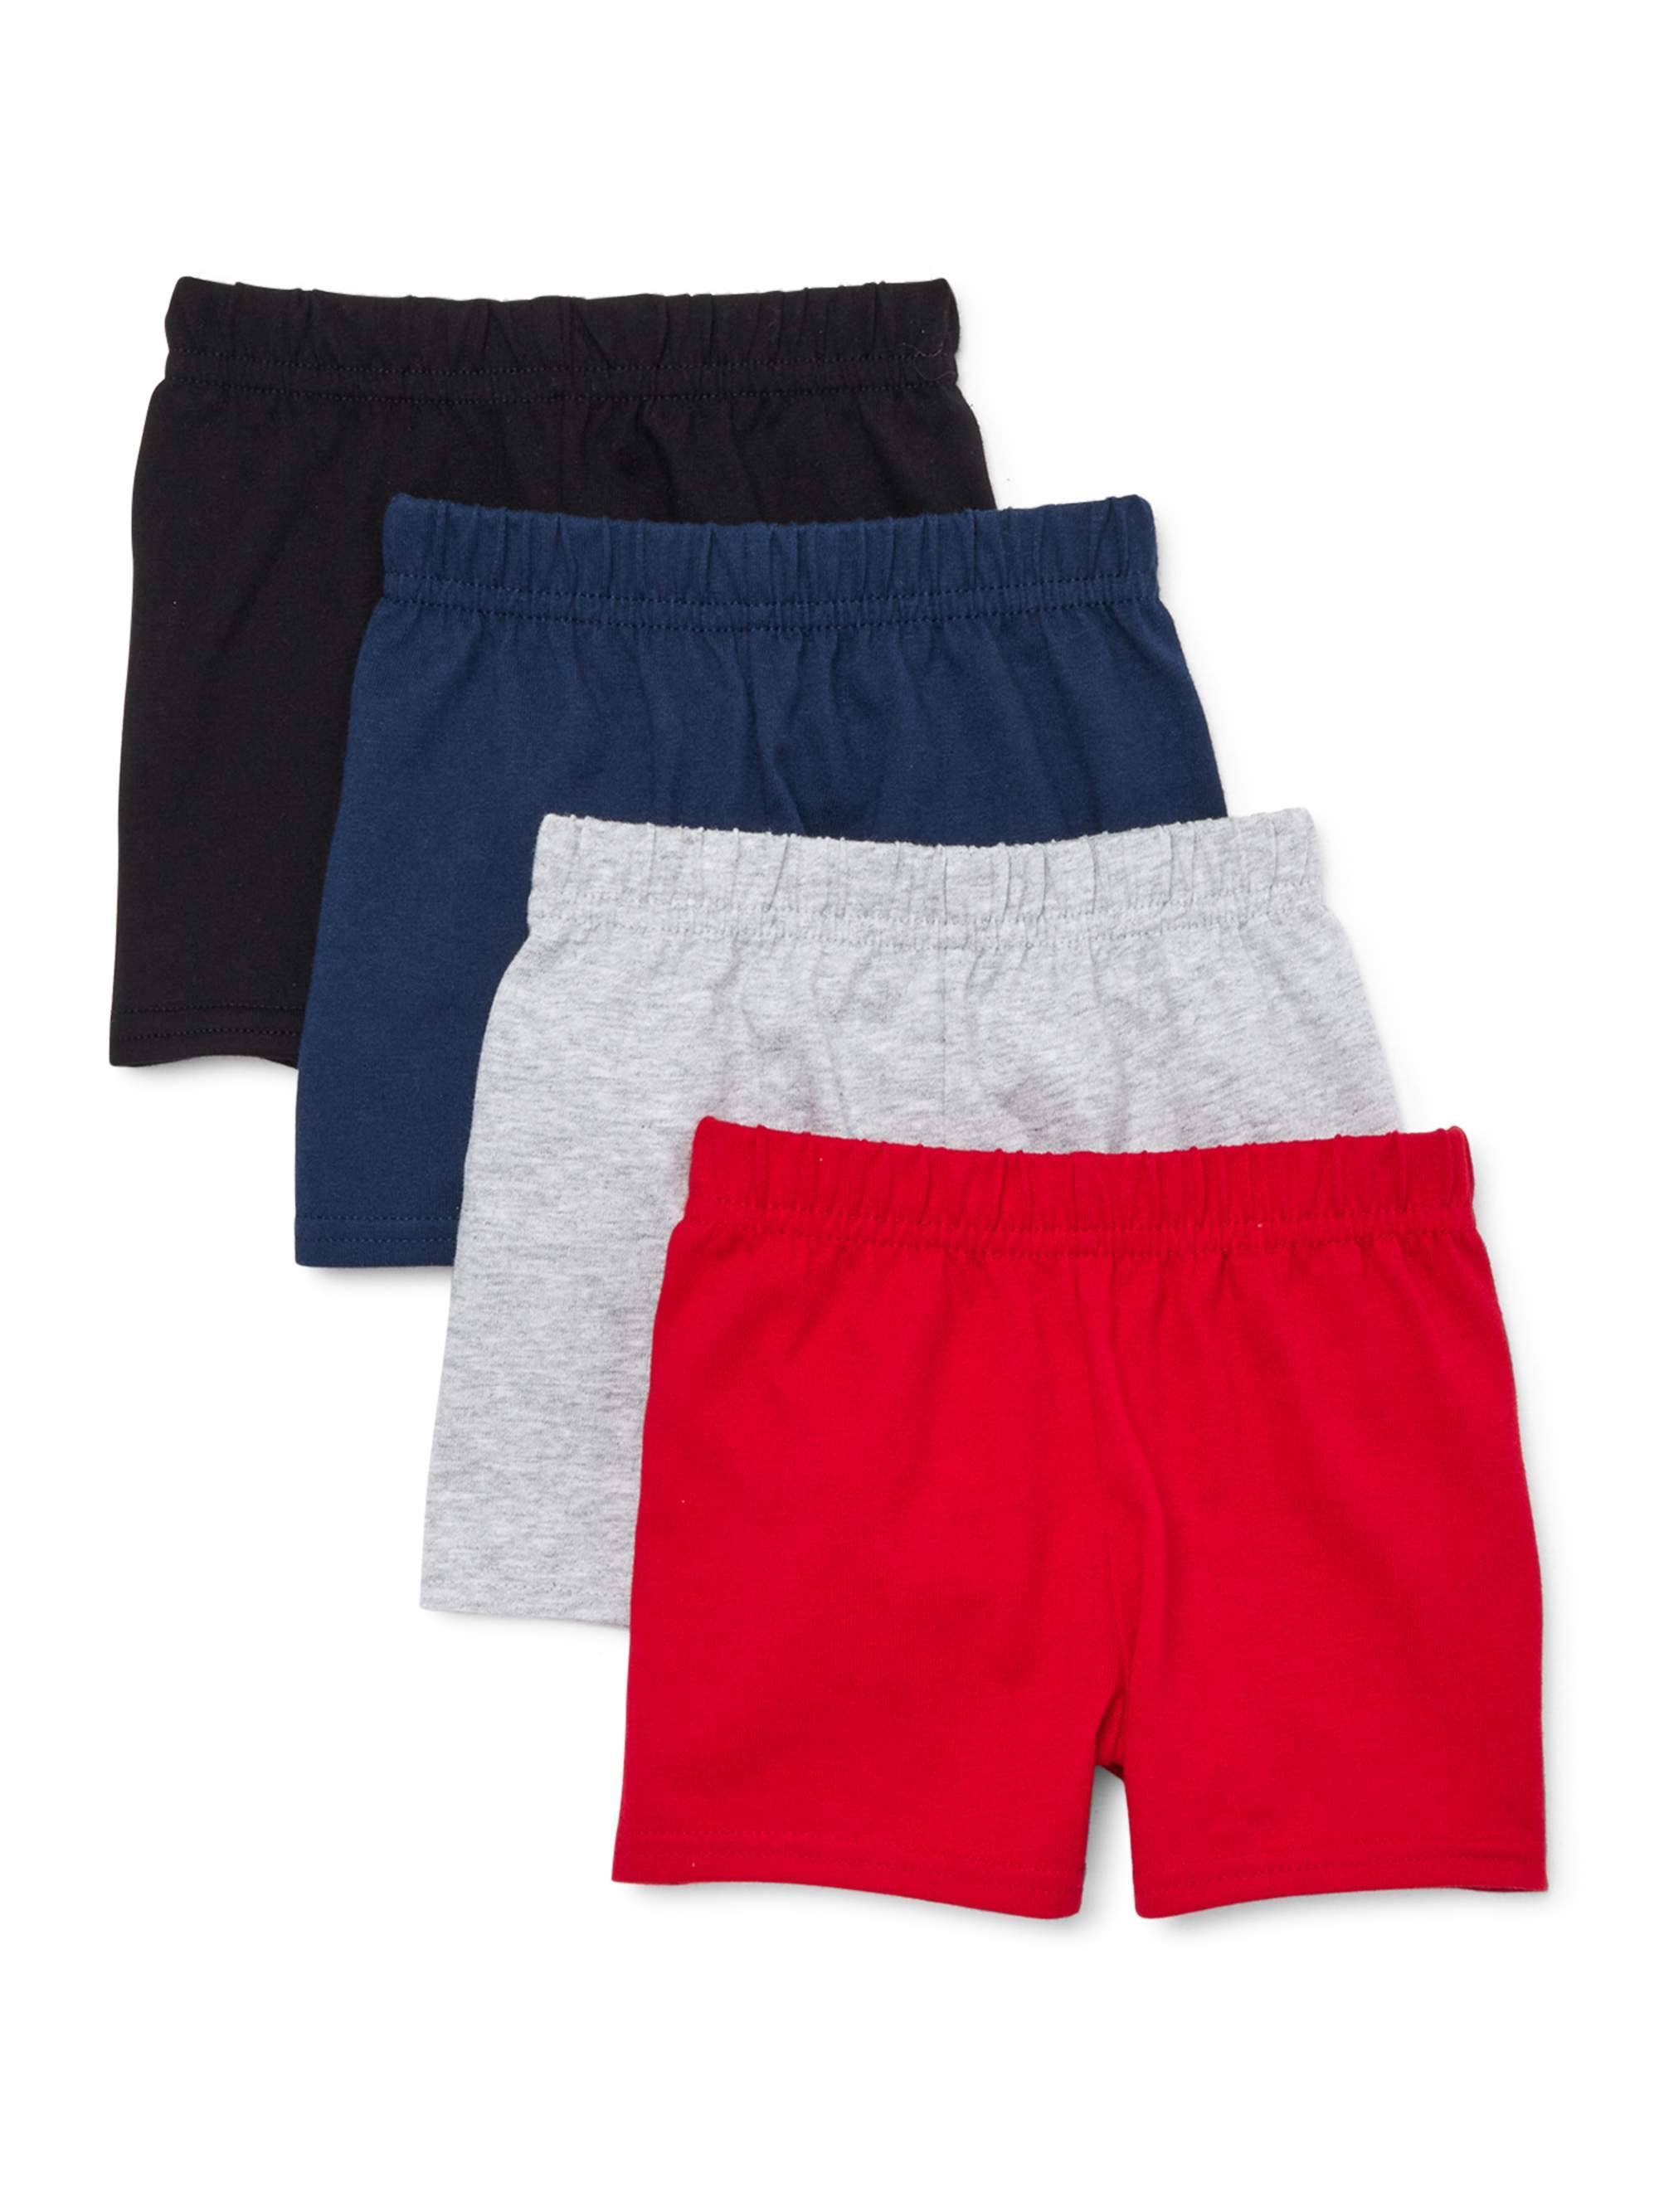 Garanimals Baby Boy Jersey Shorts Multi-Pack, 4pc